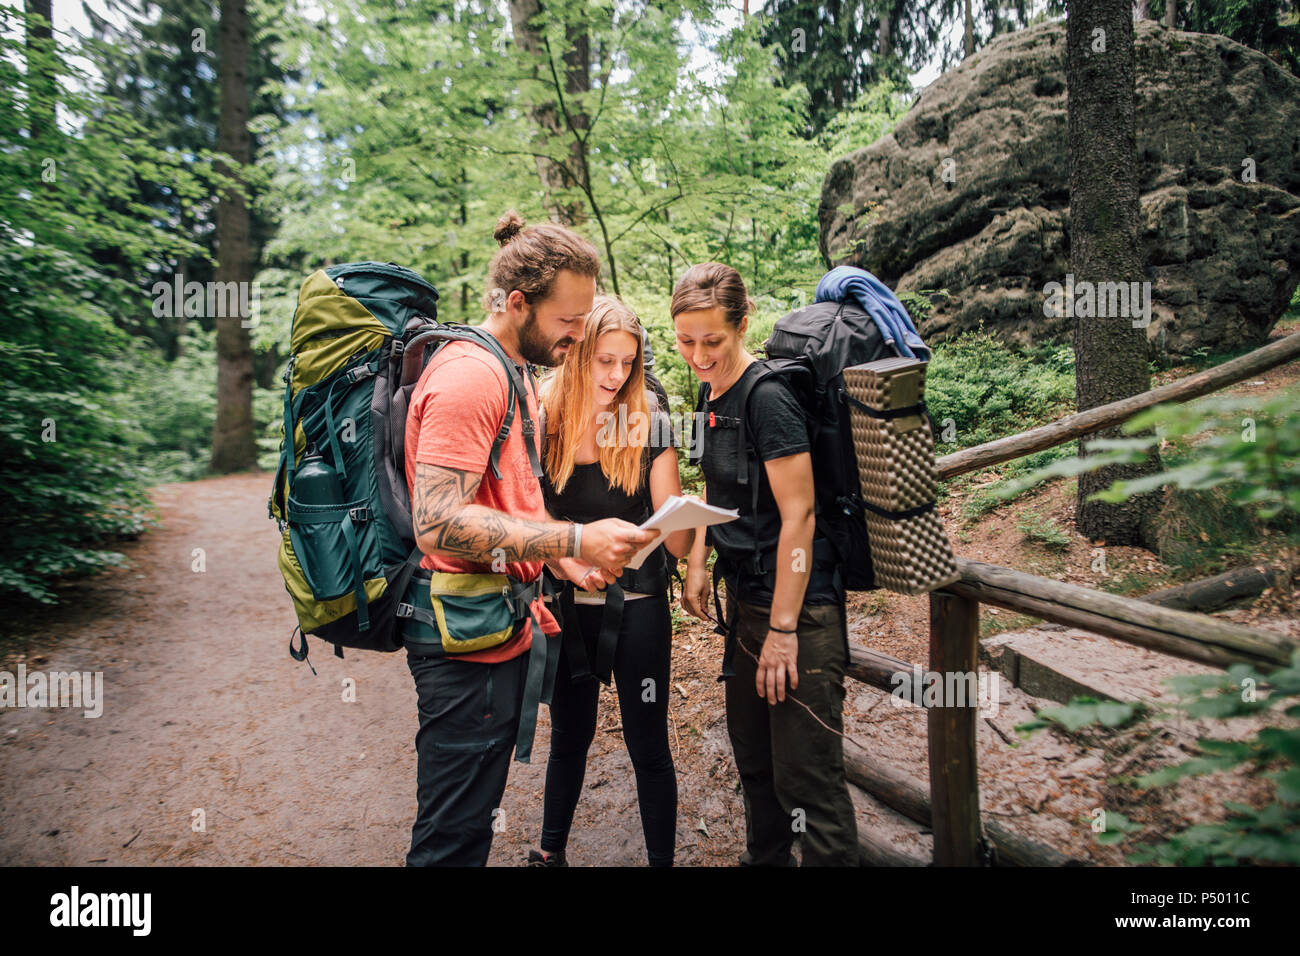 Friends on a hiking trip reading map Stock Photo